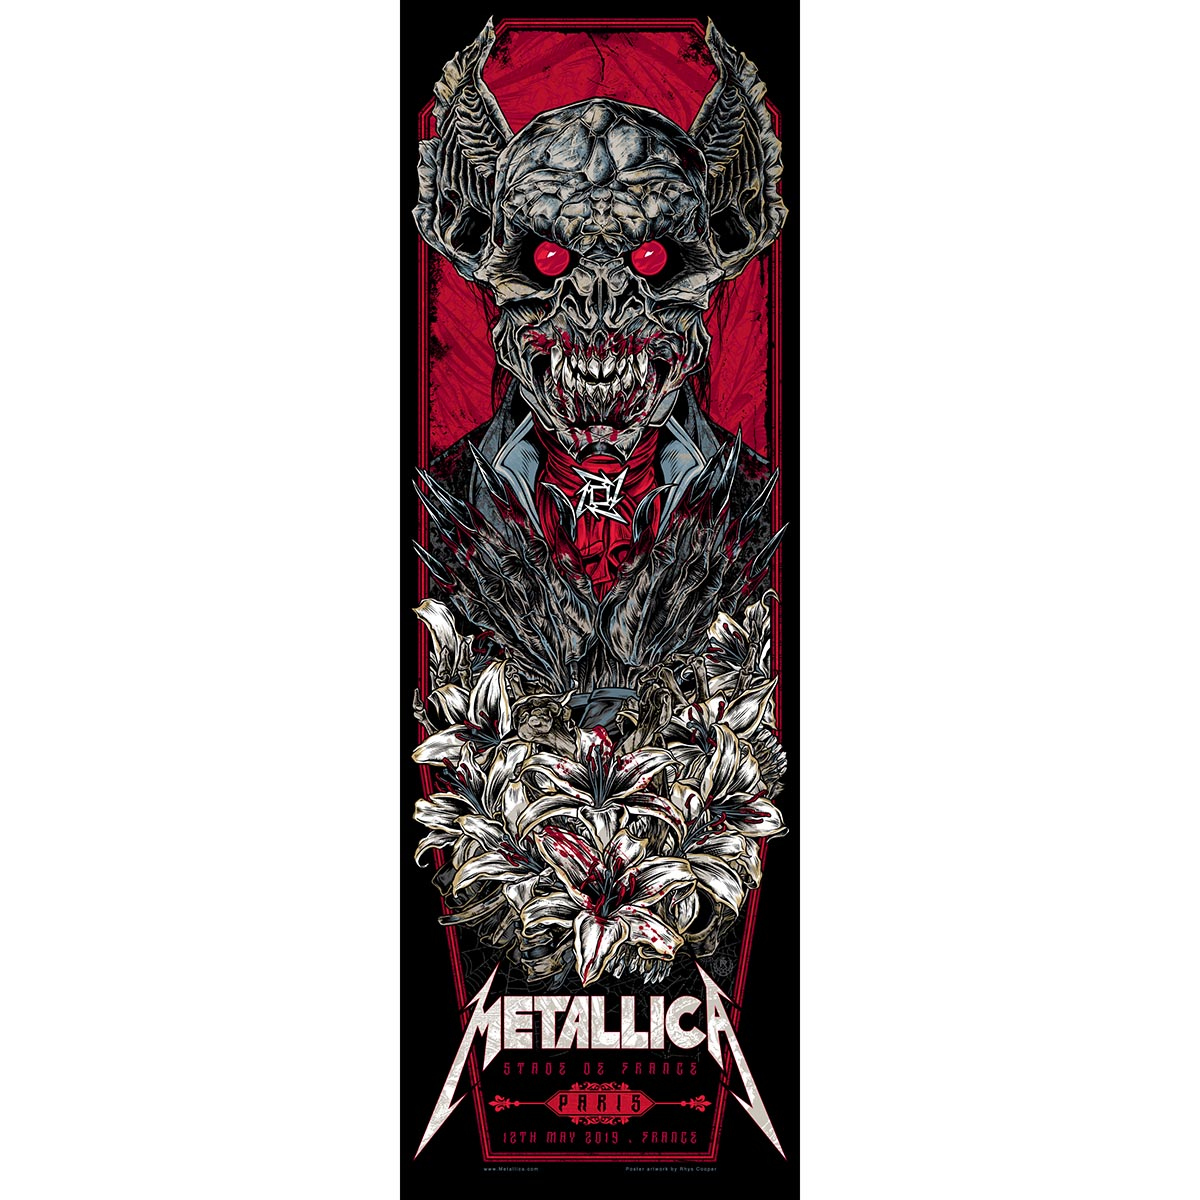 Paris May 12th – Limited Edition Numbered Screen Printed Event Poster - Metallica